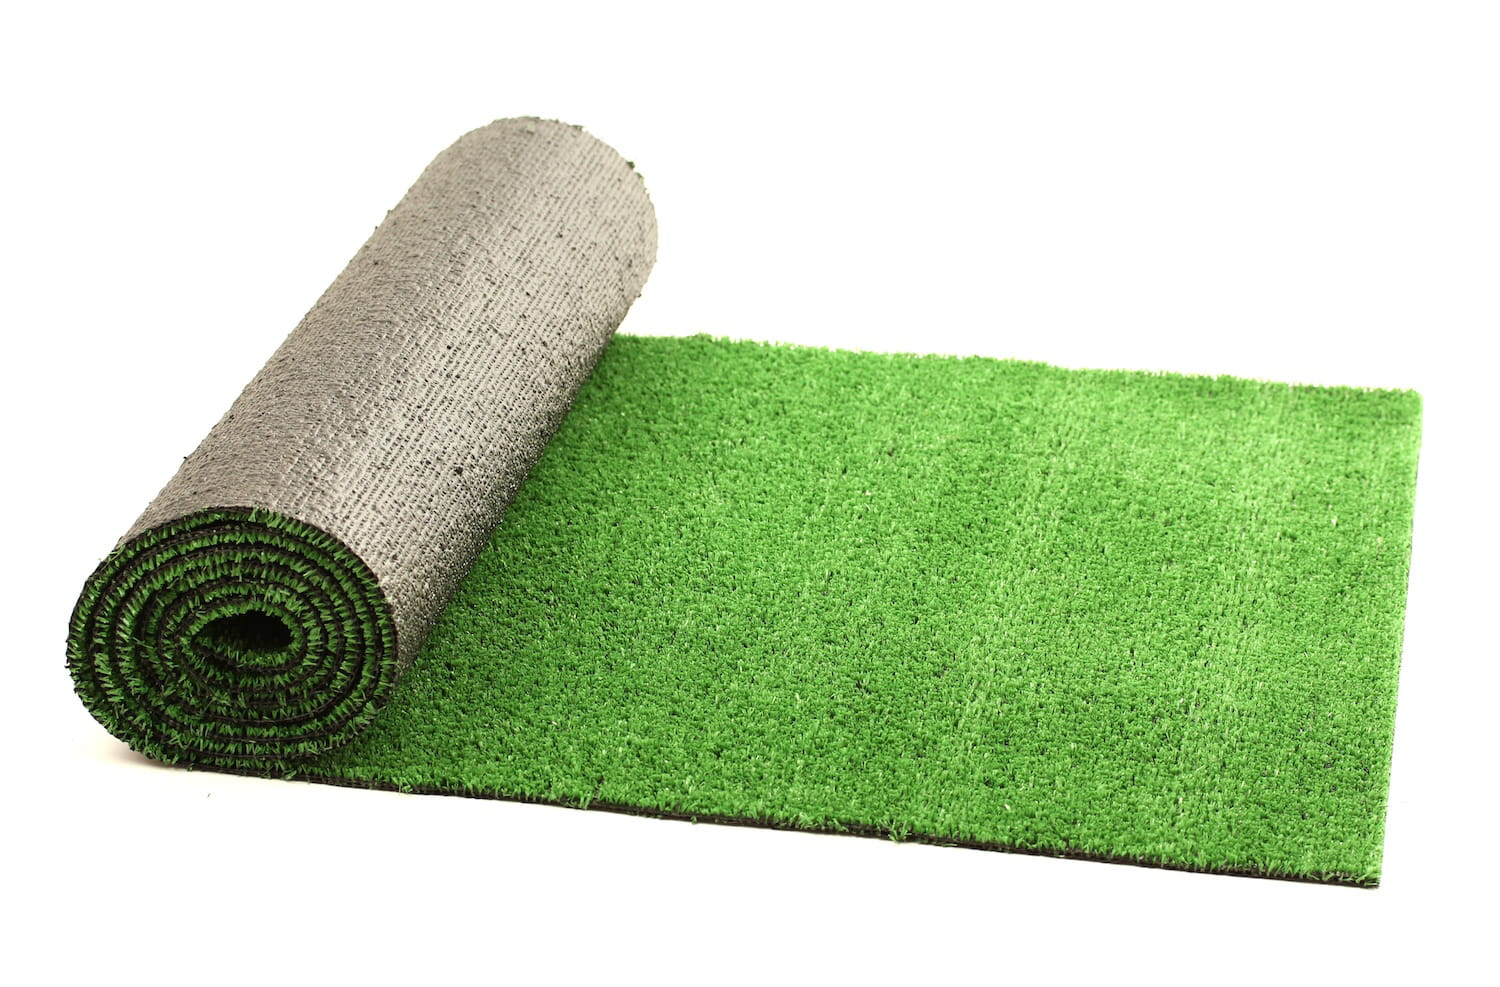 Mini Golf Turf, Artificial Grass, synthetic grass, astroturf for Mini Golf - Australia & SE Asia